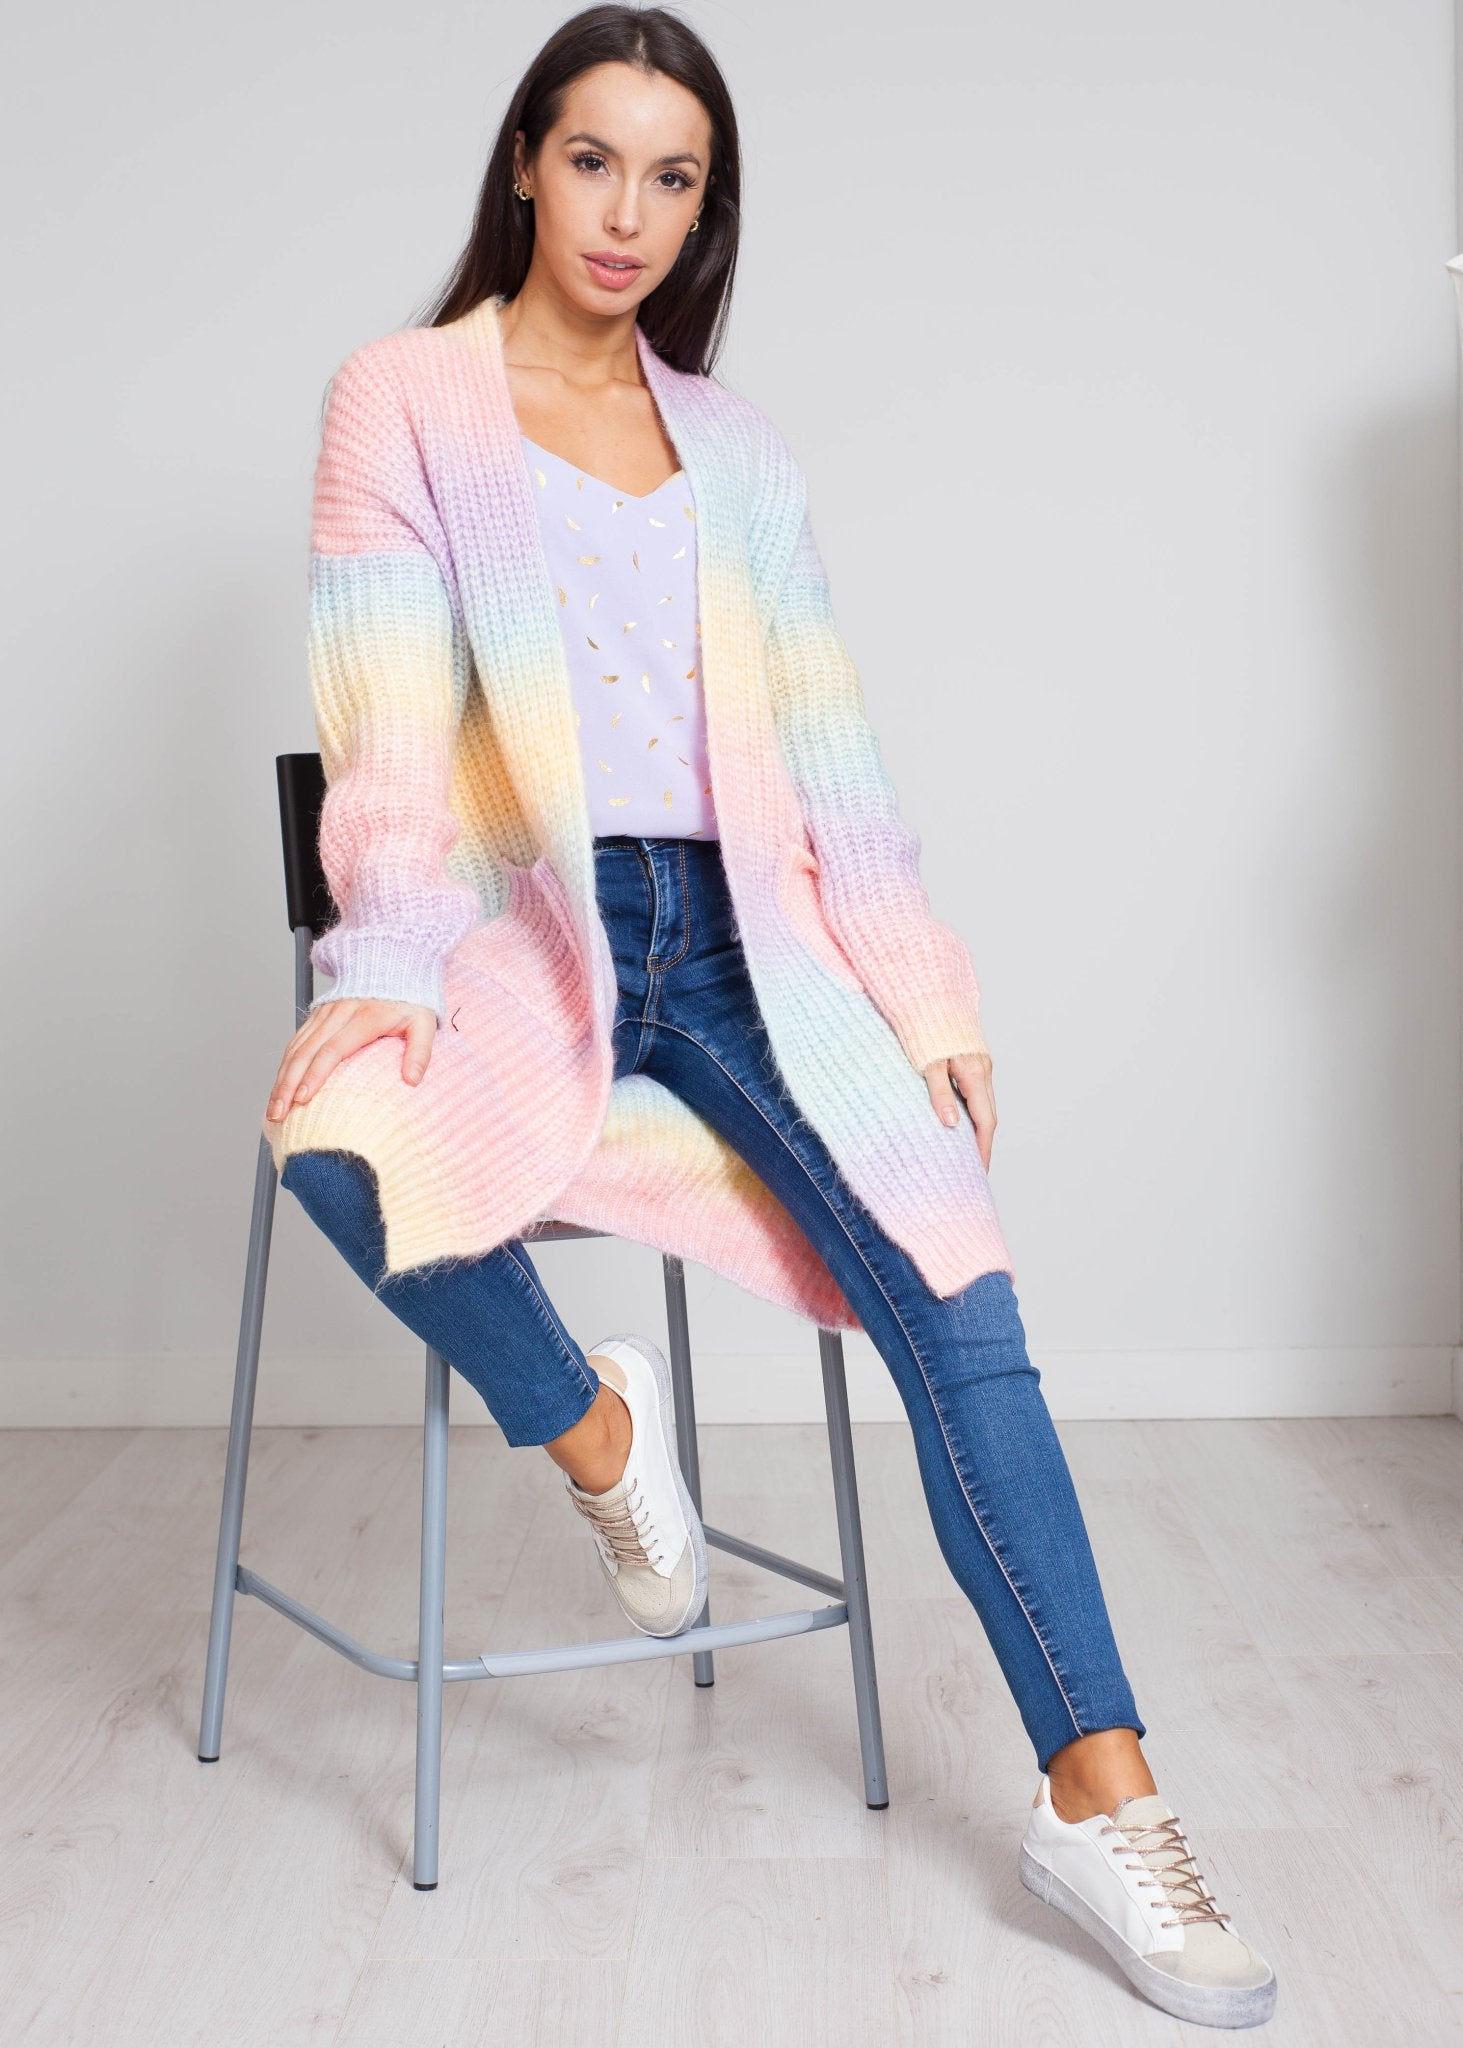 Alice Cardigan In Rainbow Mix - The Walk in Wardrobe